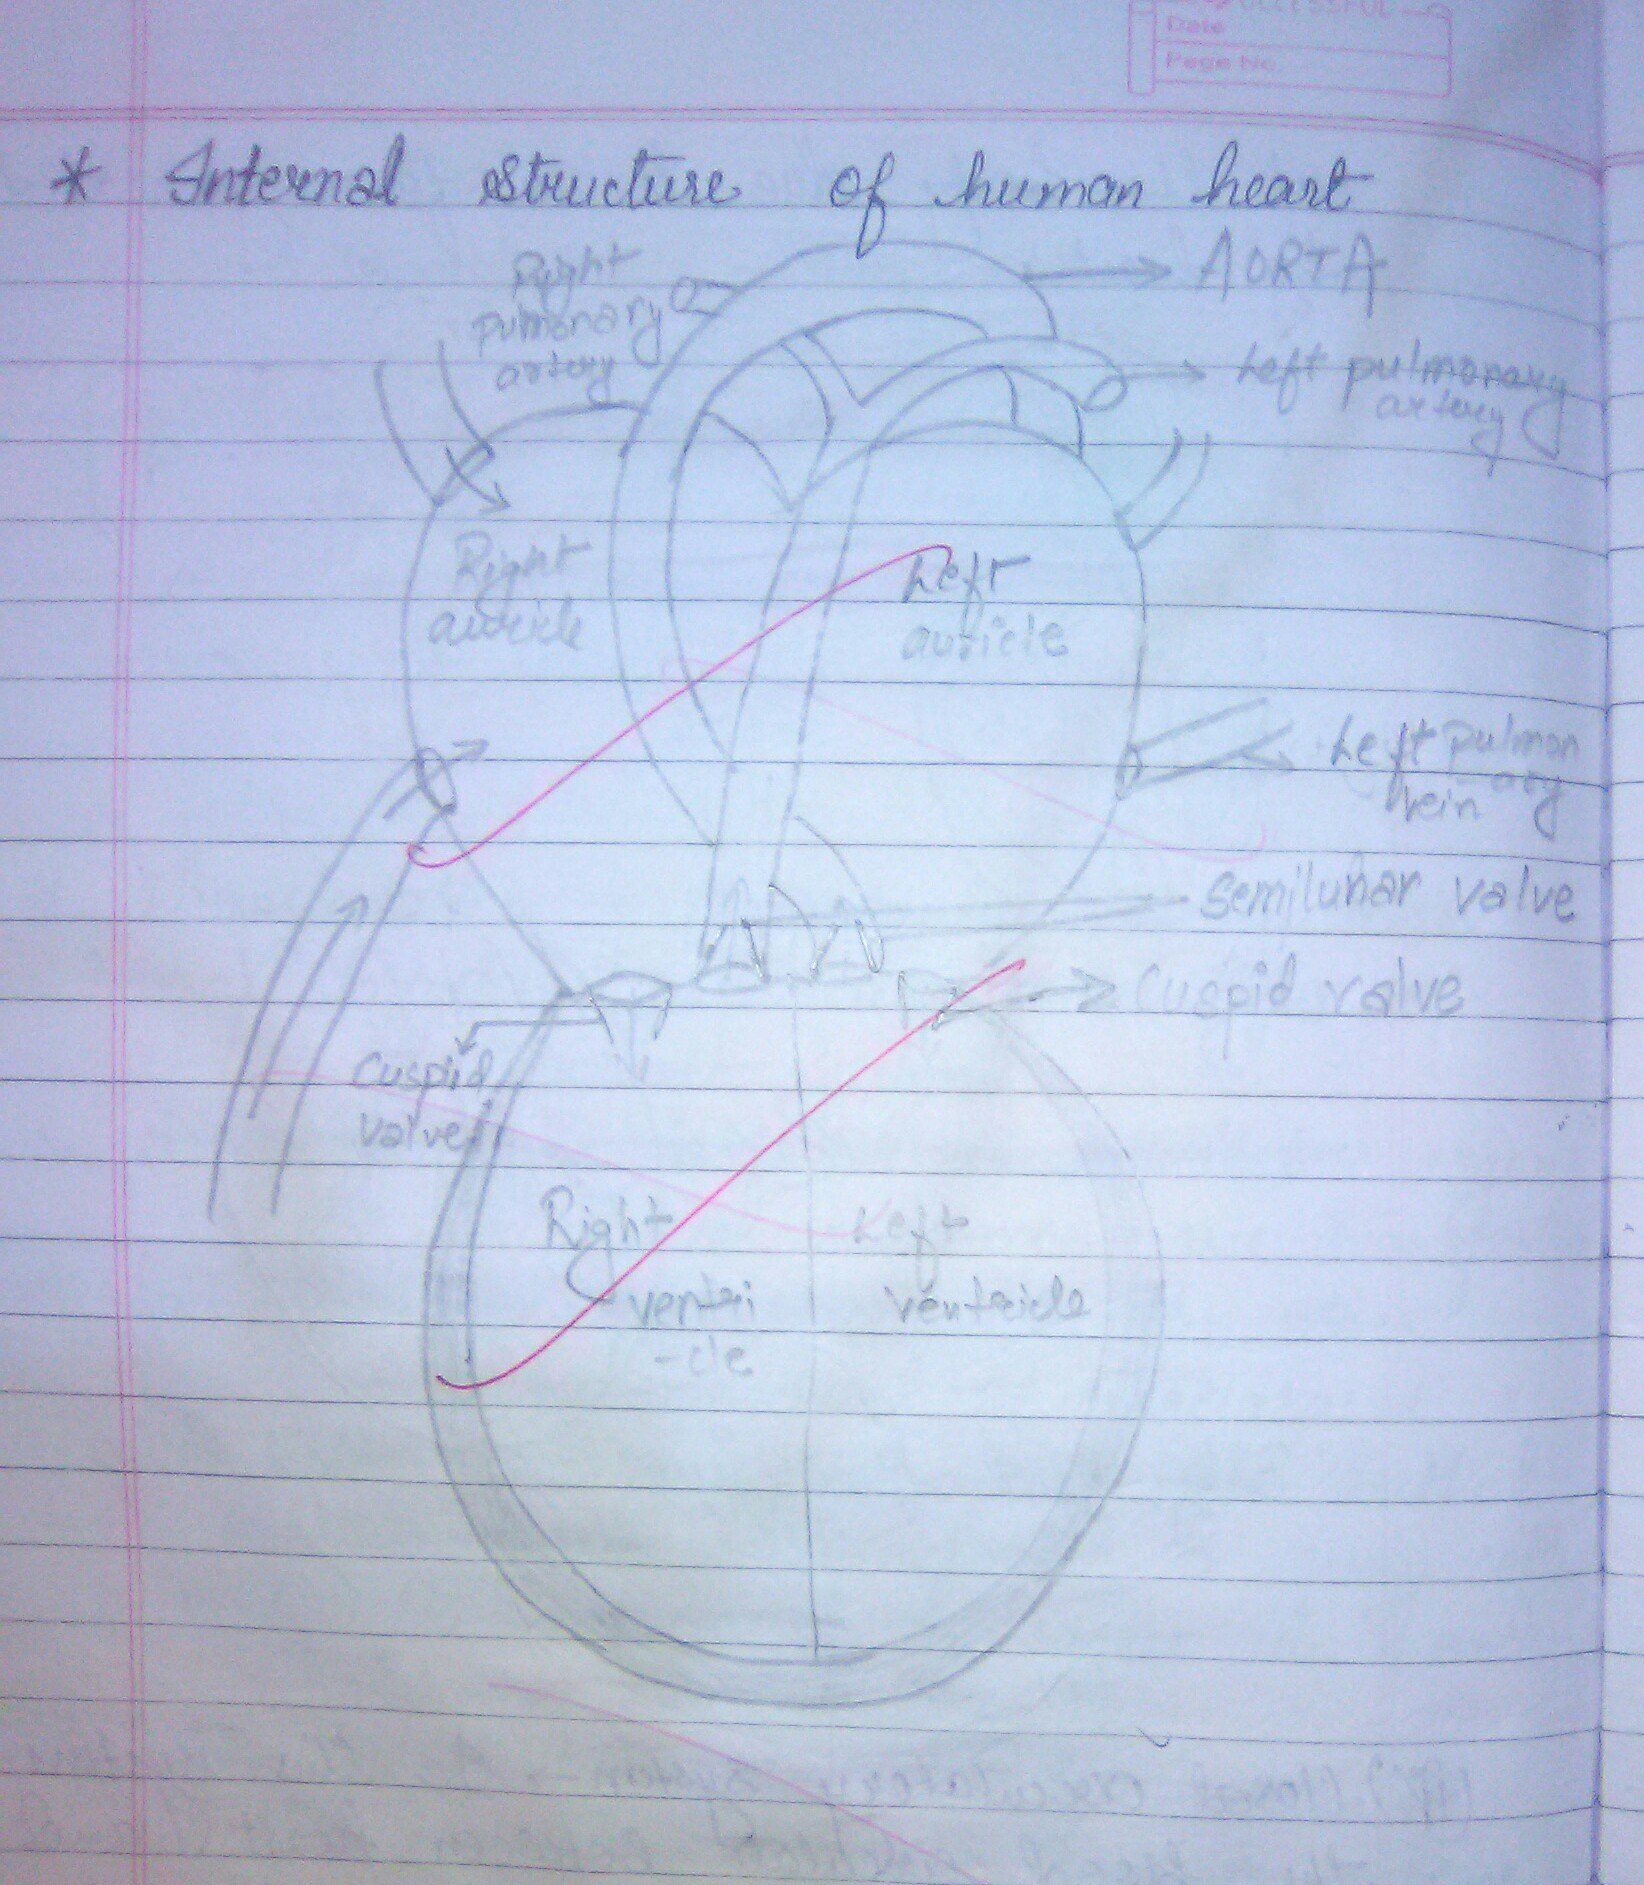 Draw A Well Labelled Diagram Of A Human Heart For Board Exam Purpose